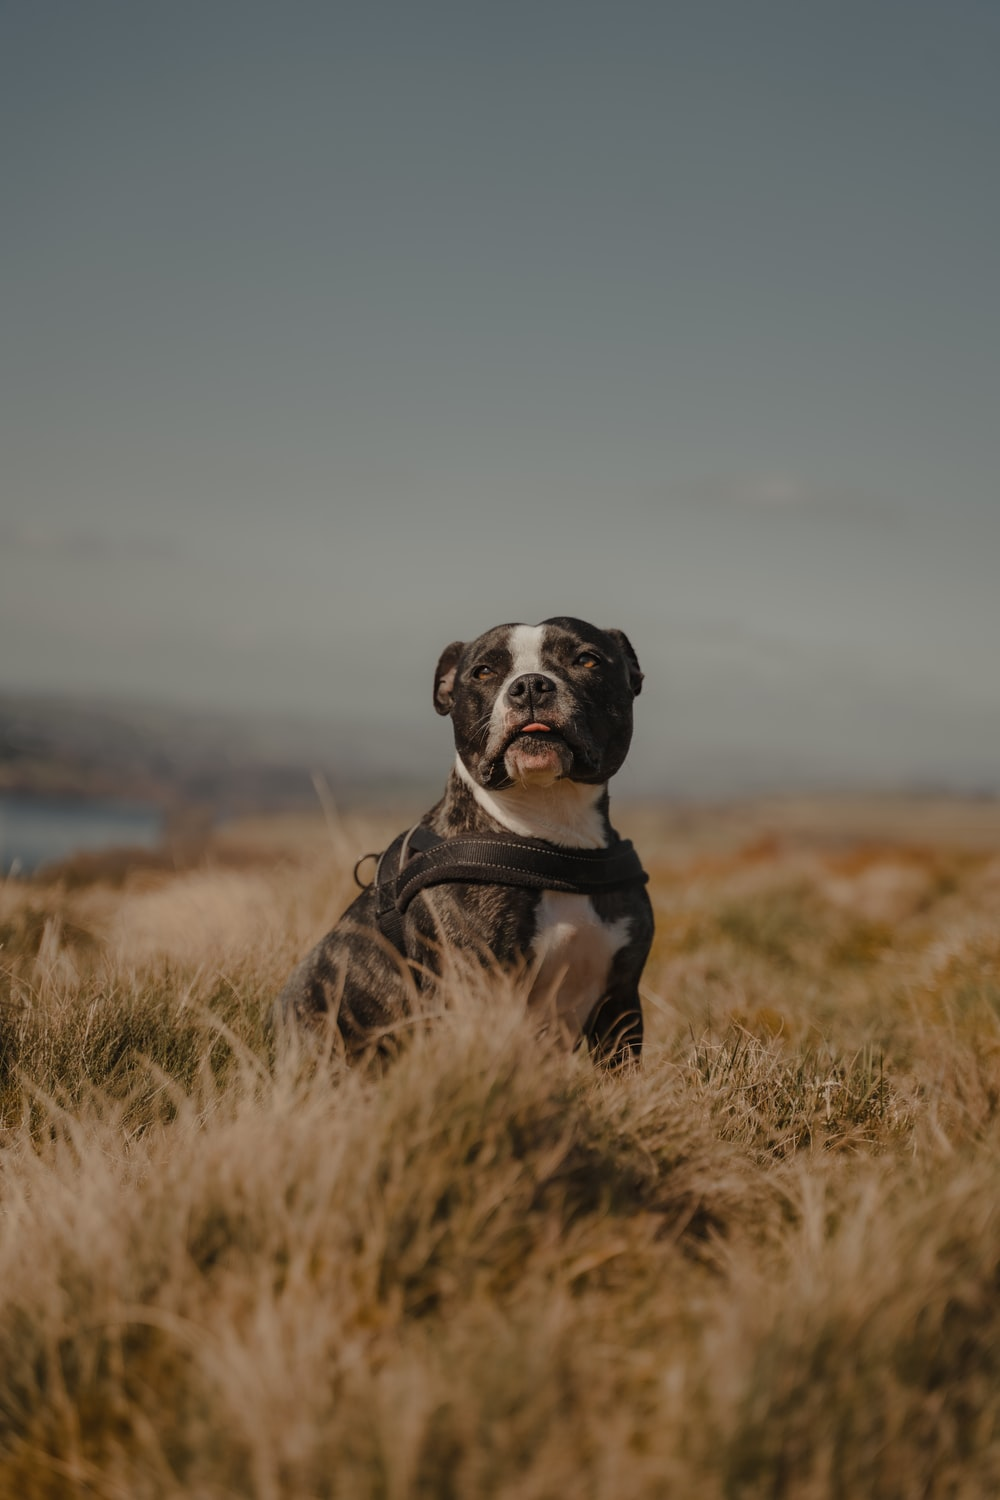 black and white short coated dog on brown grass field during daytime